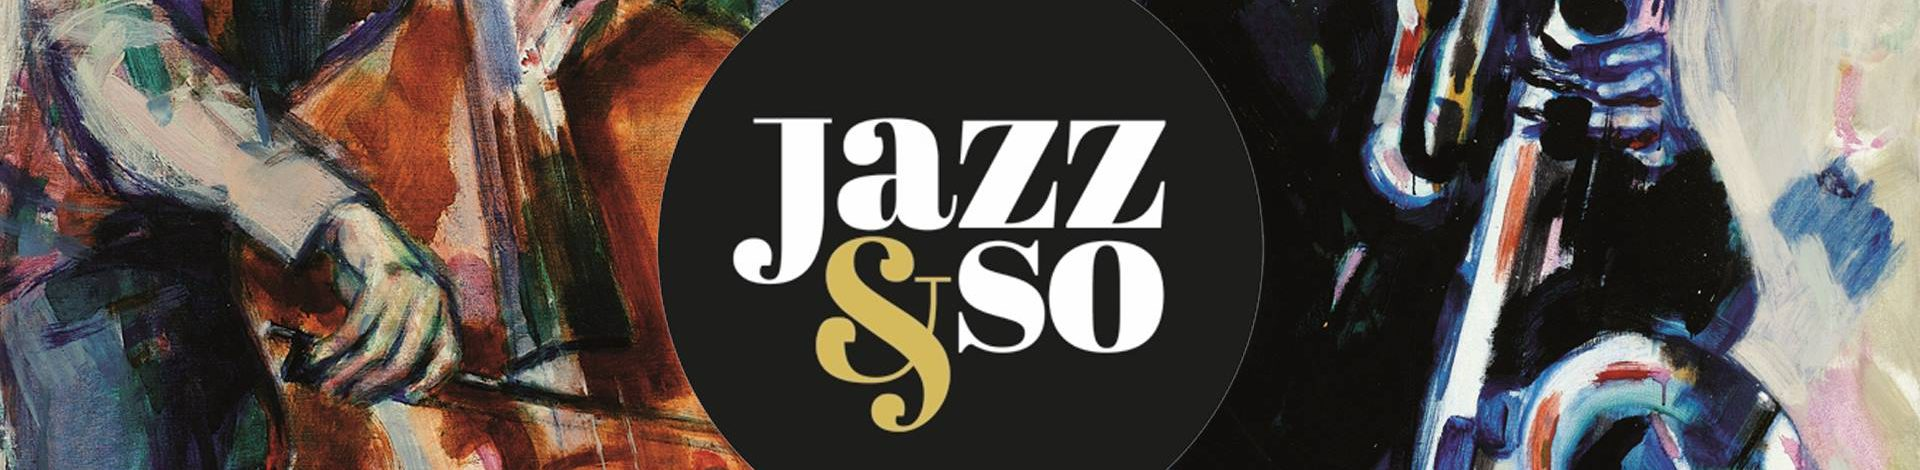 Jazz & So: Trio Bas de Jager in Musea Zutphen